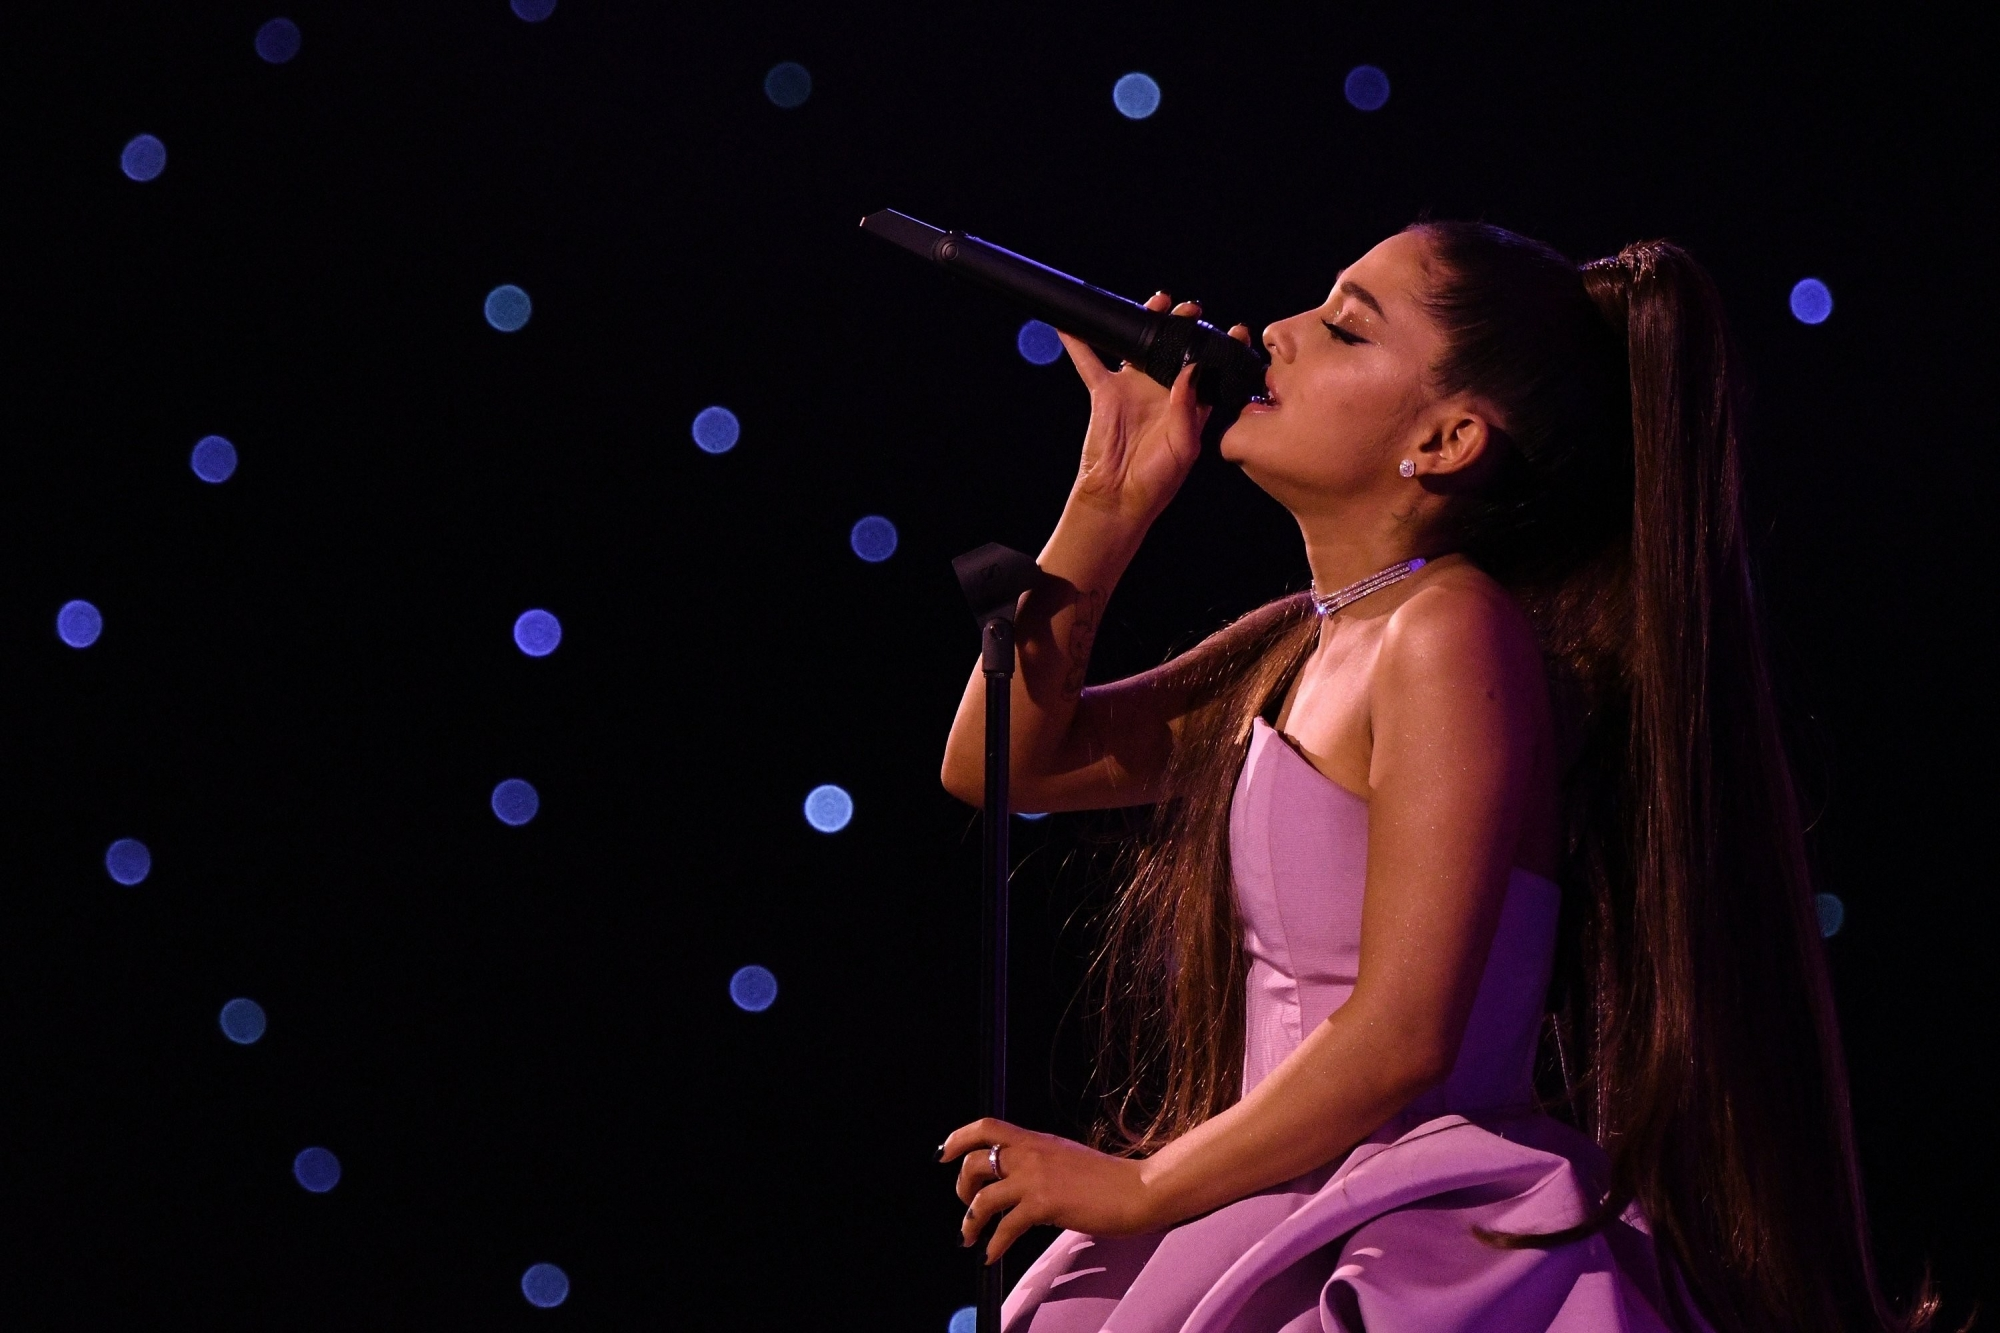 Ariana Grande ties Beatles and makes chart history